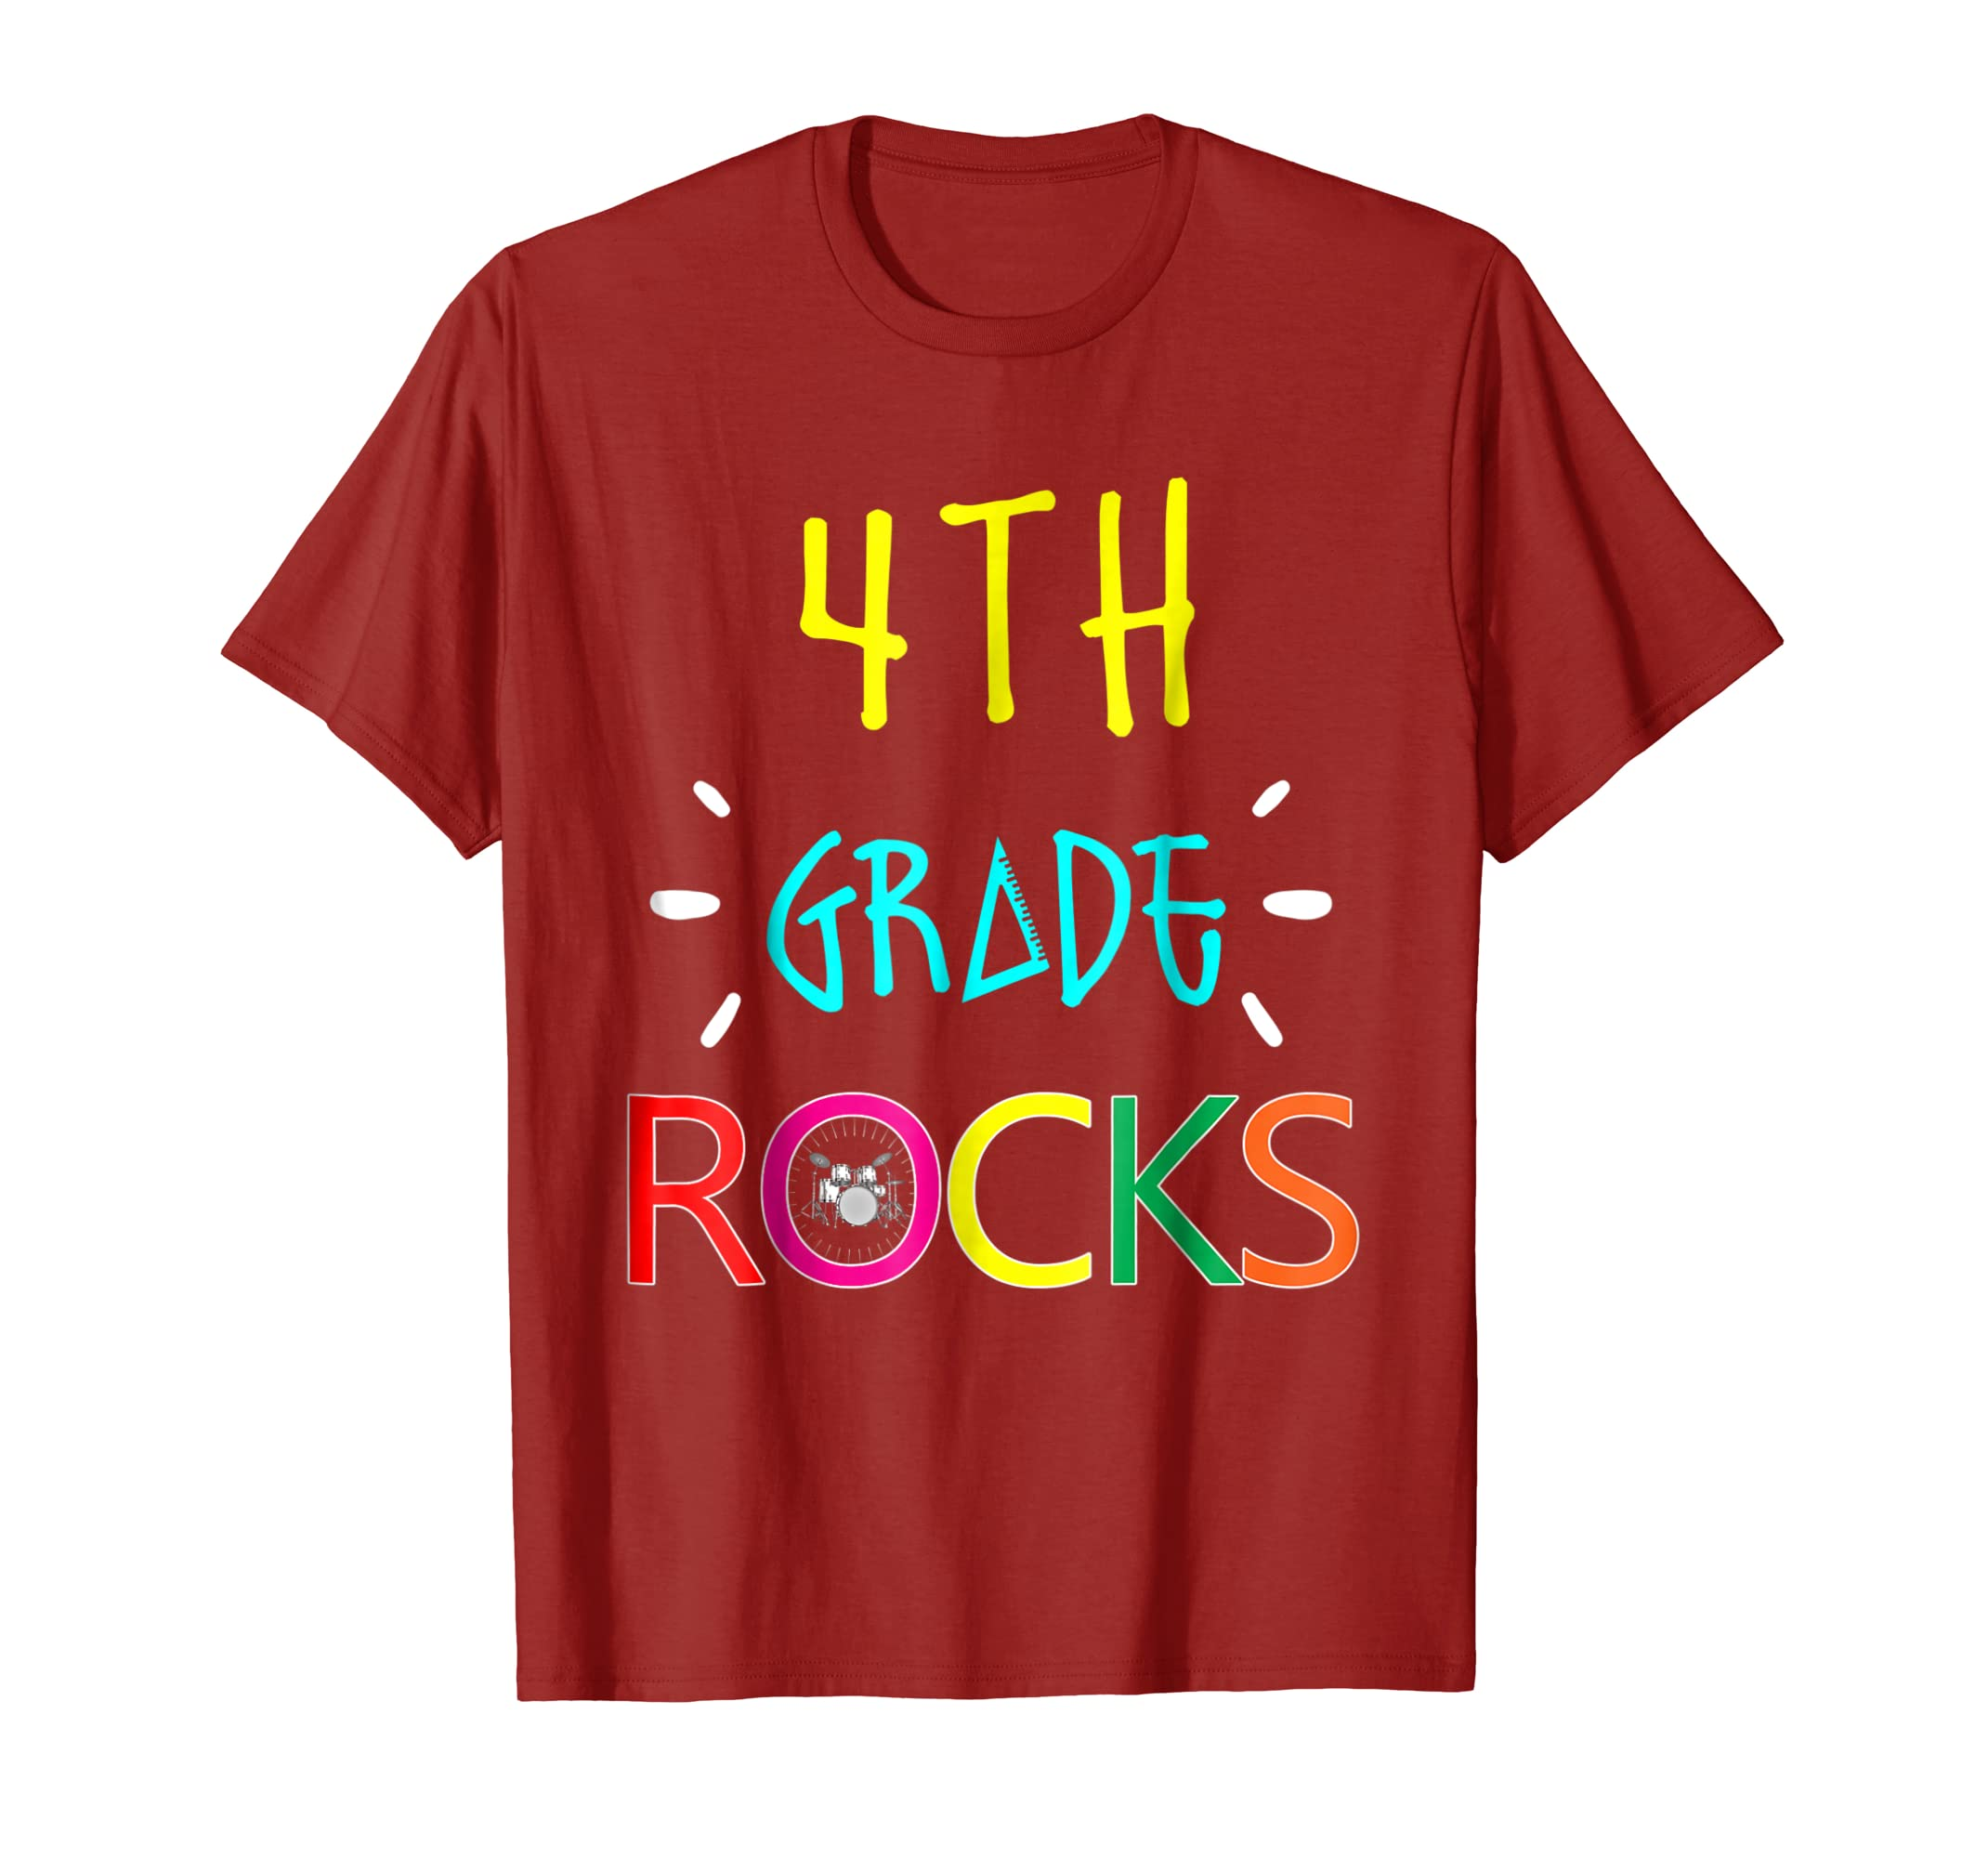 Awesome 4th Grade Rocks Gift T shirt Funny Back To School-mt